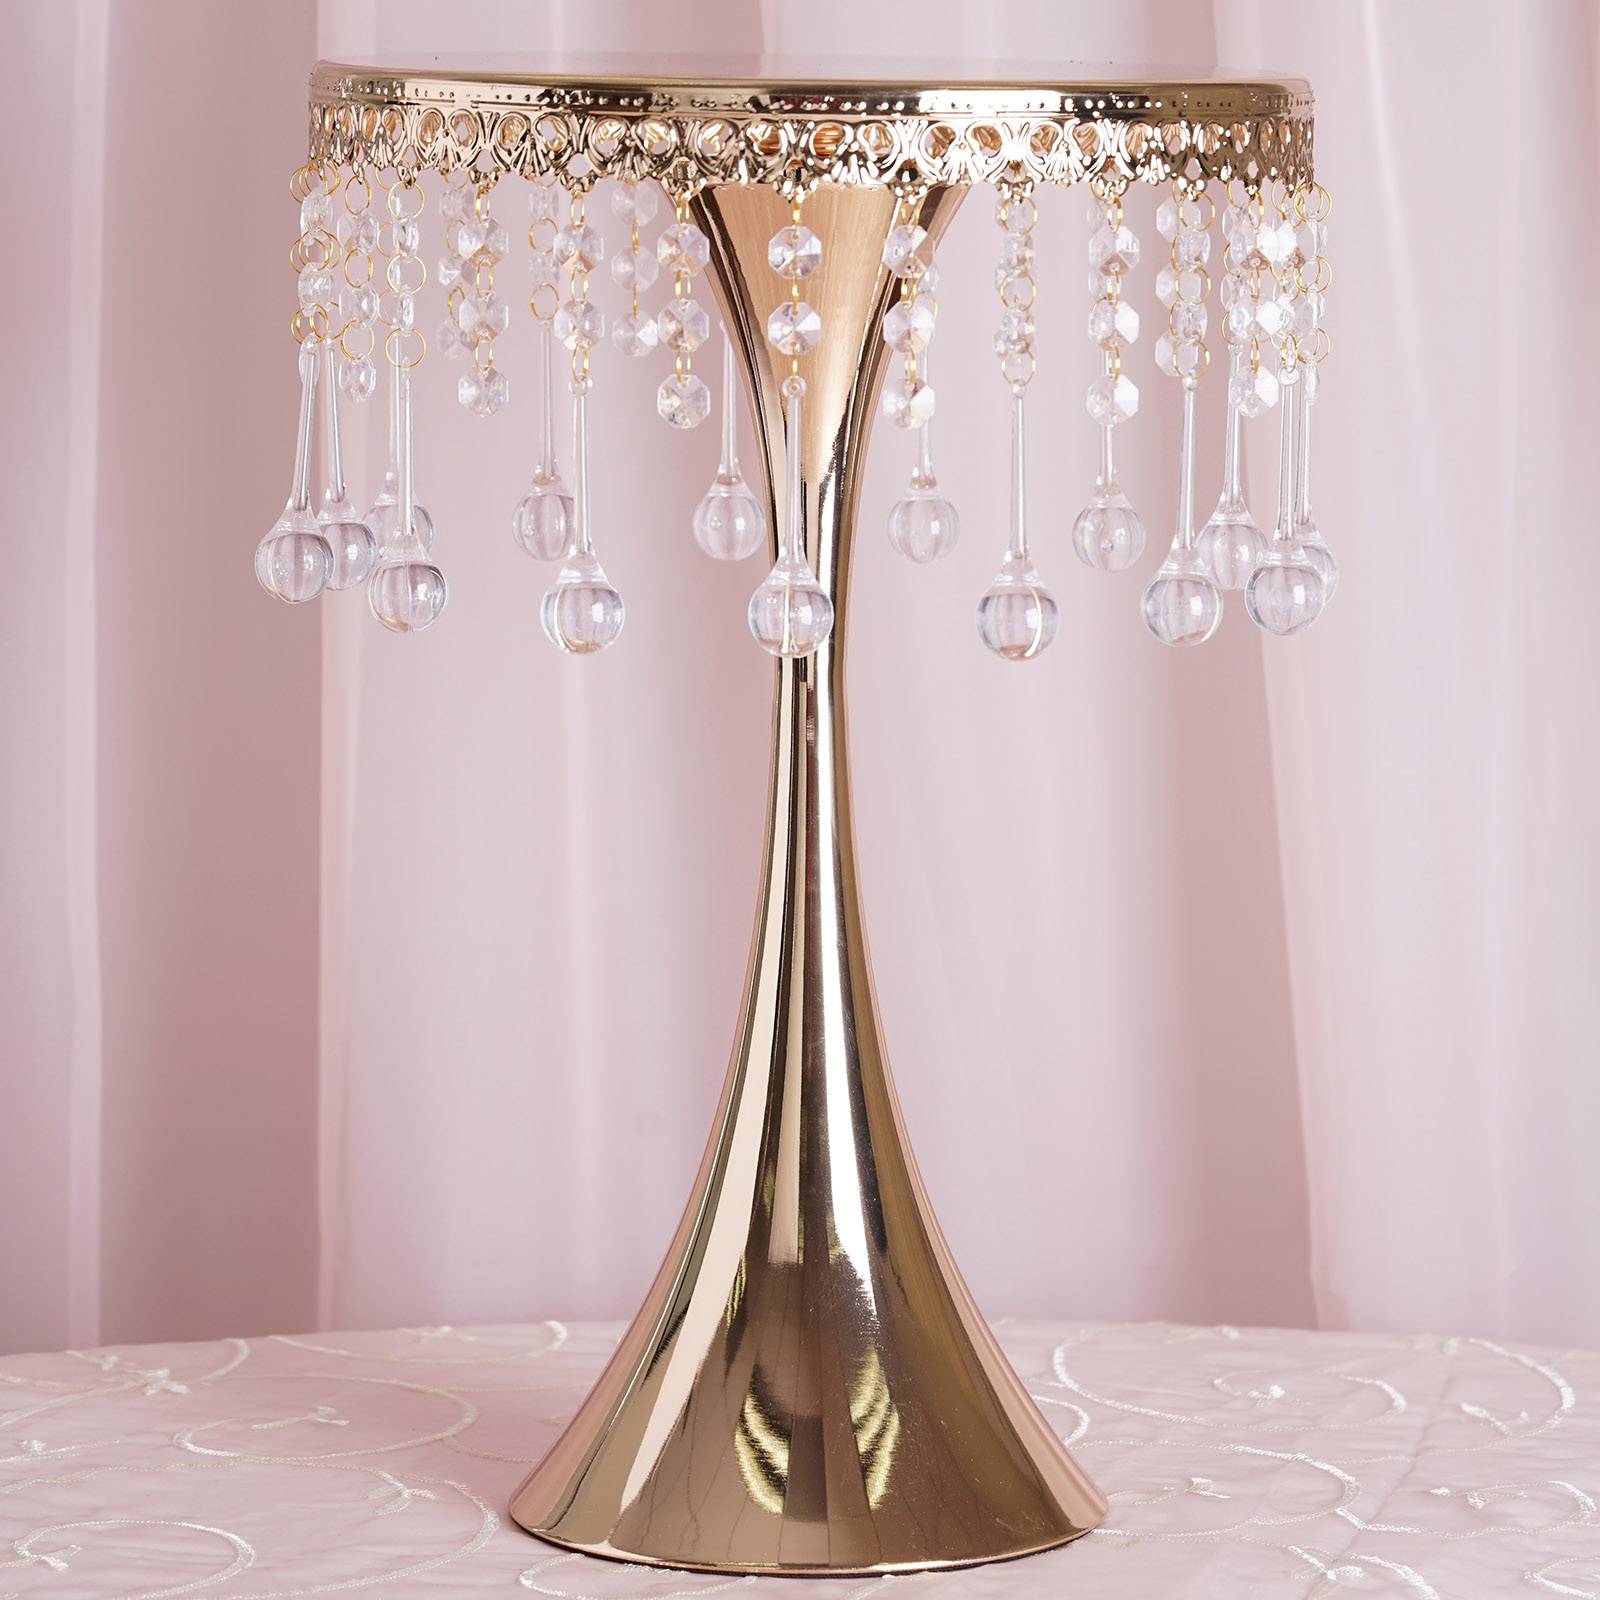 """17"""" tall Pedestal Cake Stand with Acrylic Crystal Chains ..."""